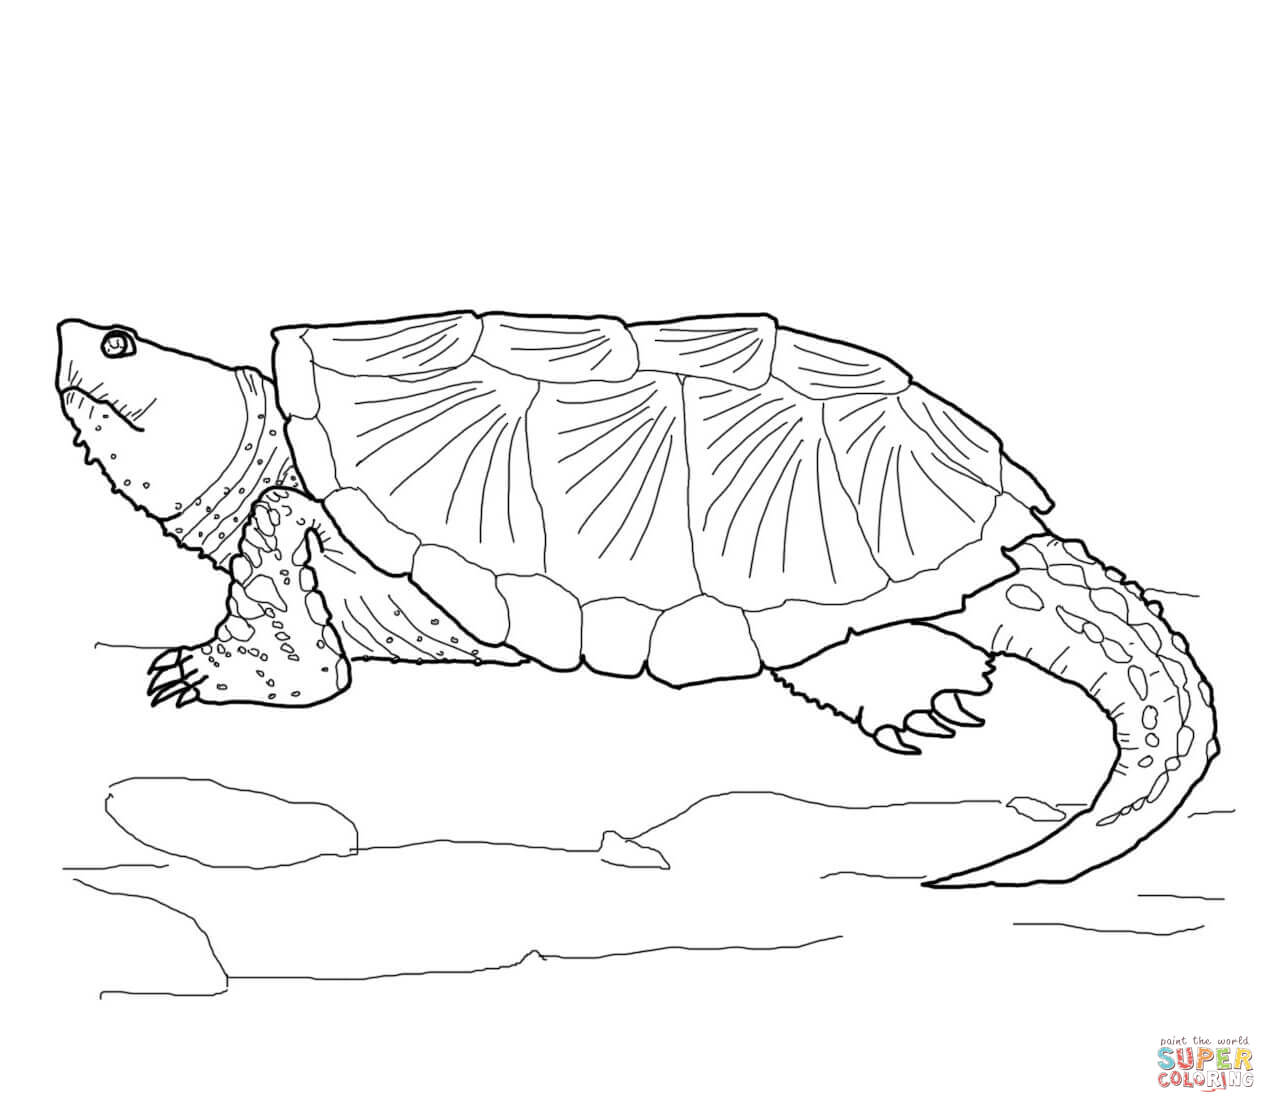 Drawn sea turtle snapping turtle Snapping Common coloring Free Pages